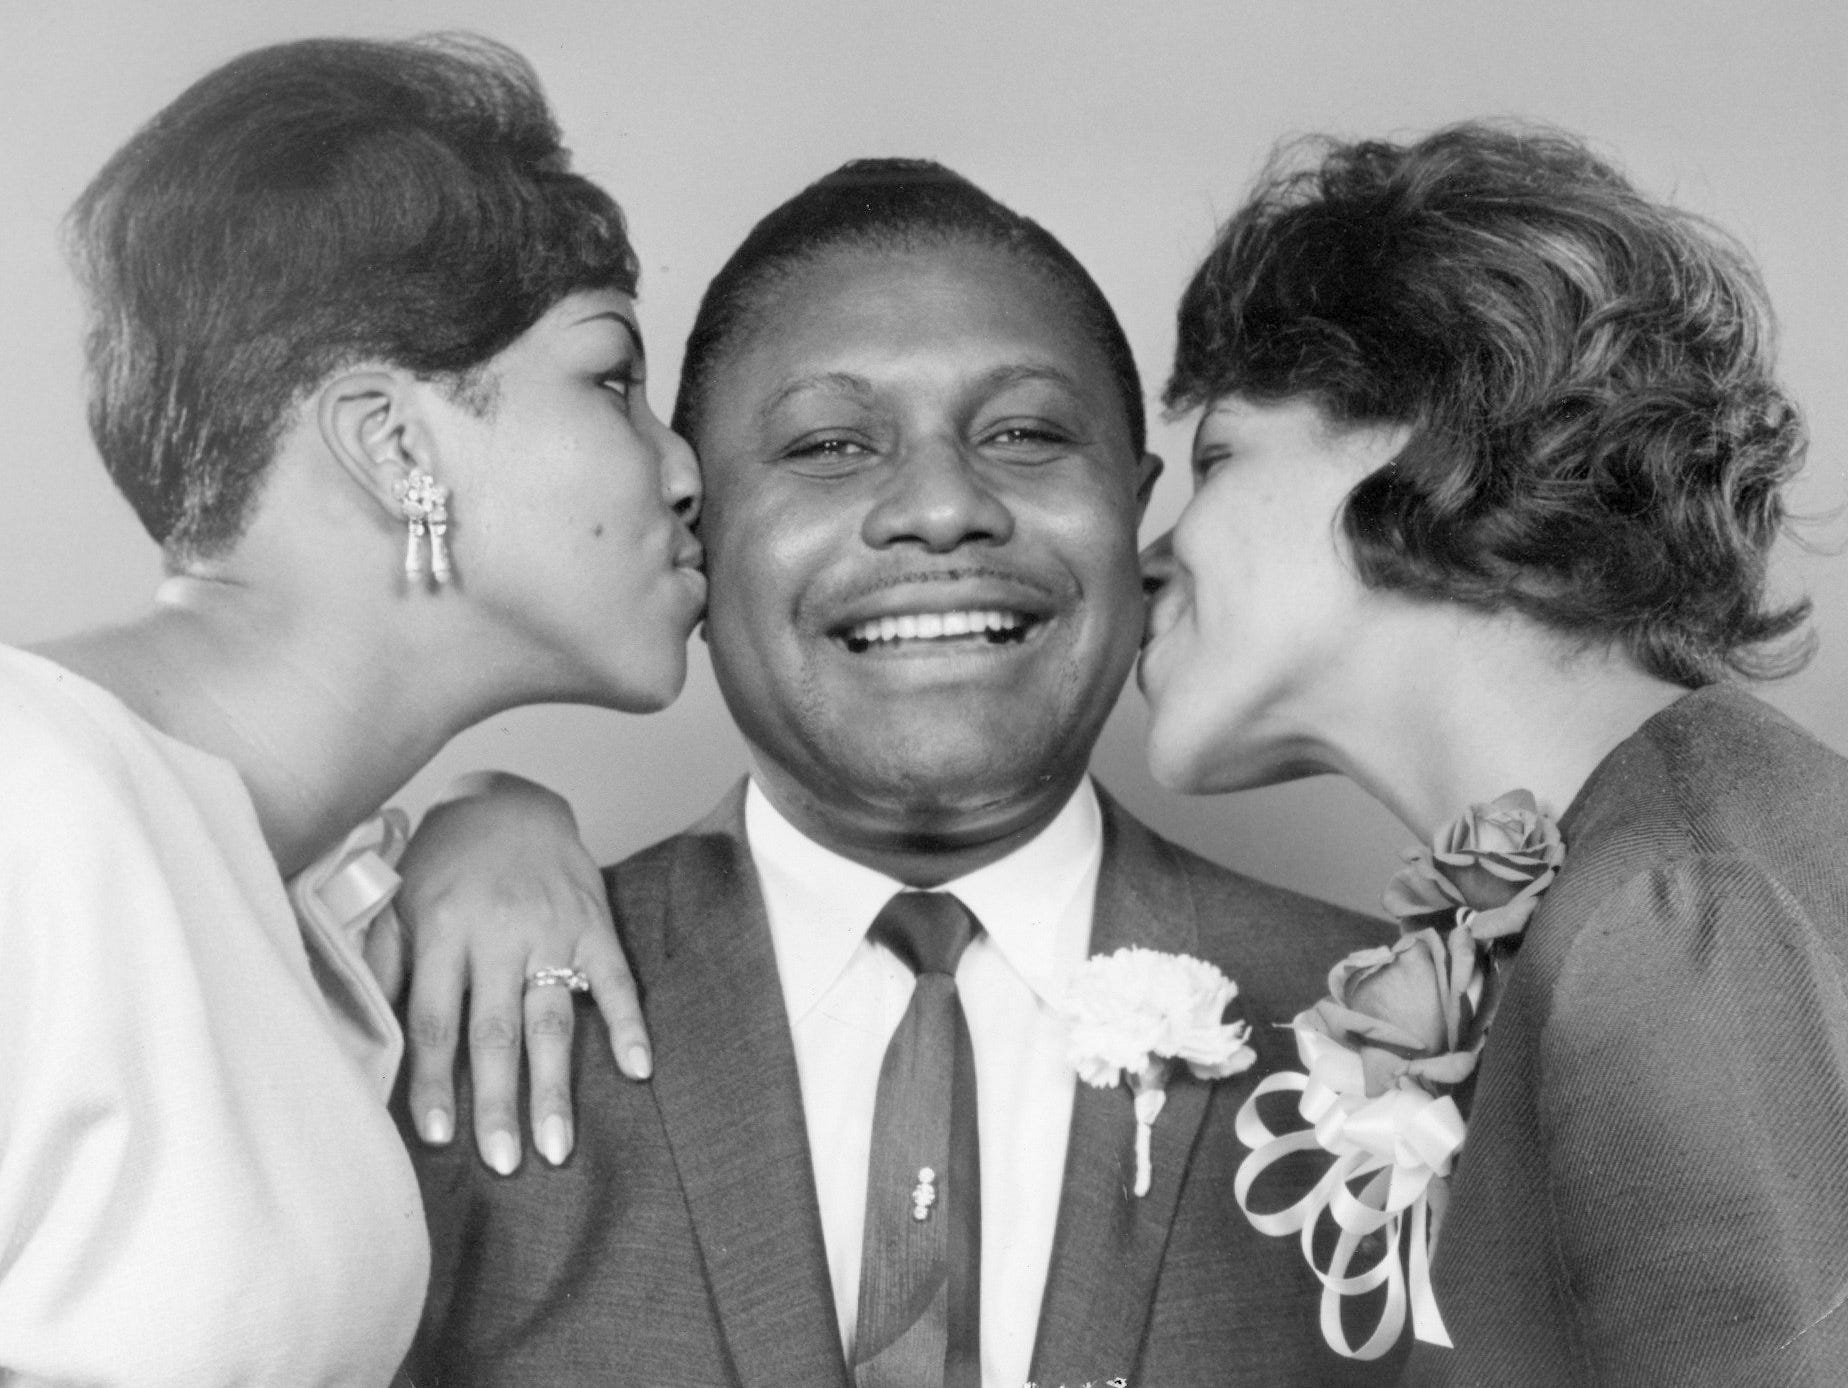 The Rev. C. L. Franklin wilth his daughters Aretha and Carolyn. May 18, 1965.